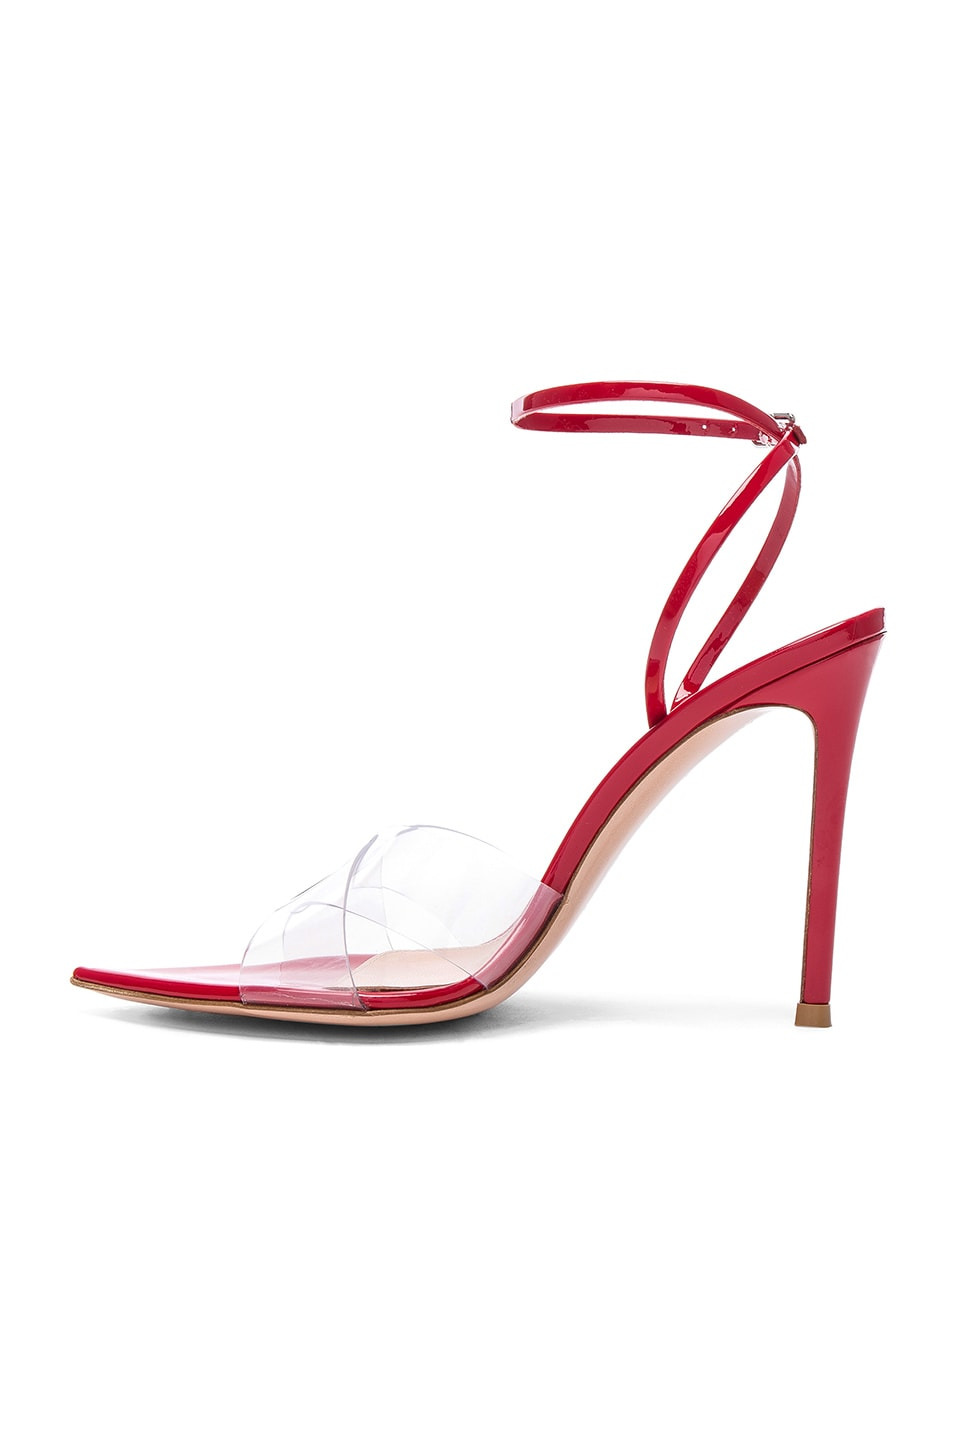 Image 5 of Gianvito Rossi Patent & Plexi Stark Ankle Strap Sandals in Transparent & Tabasco Red